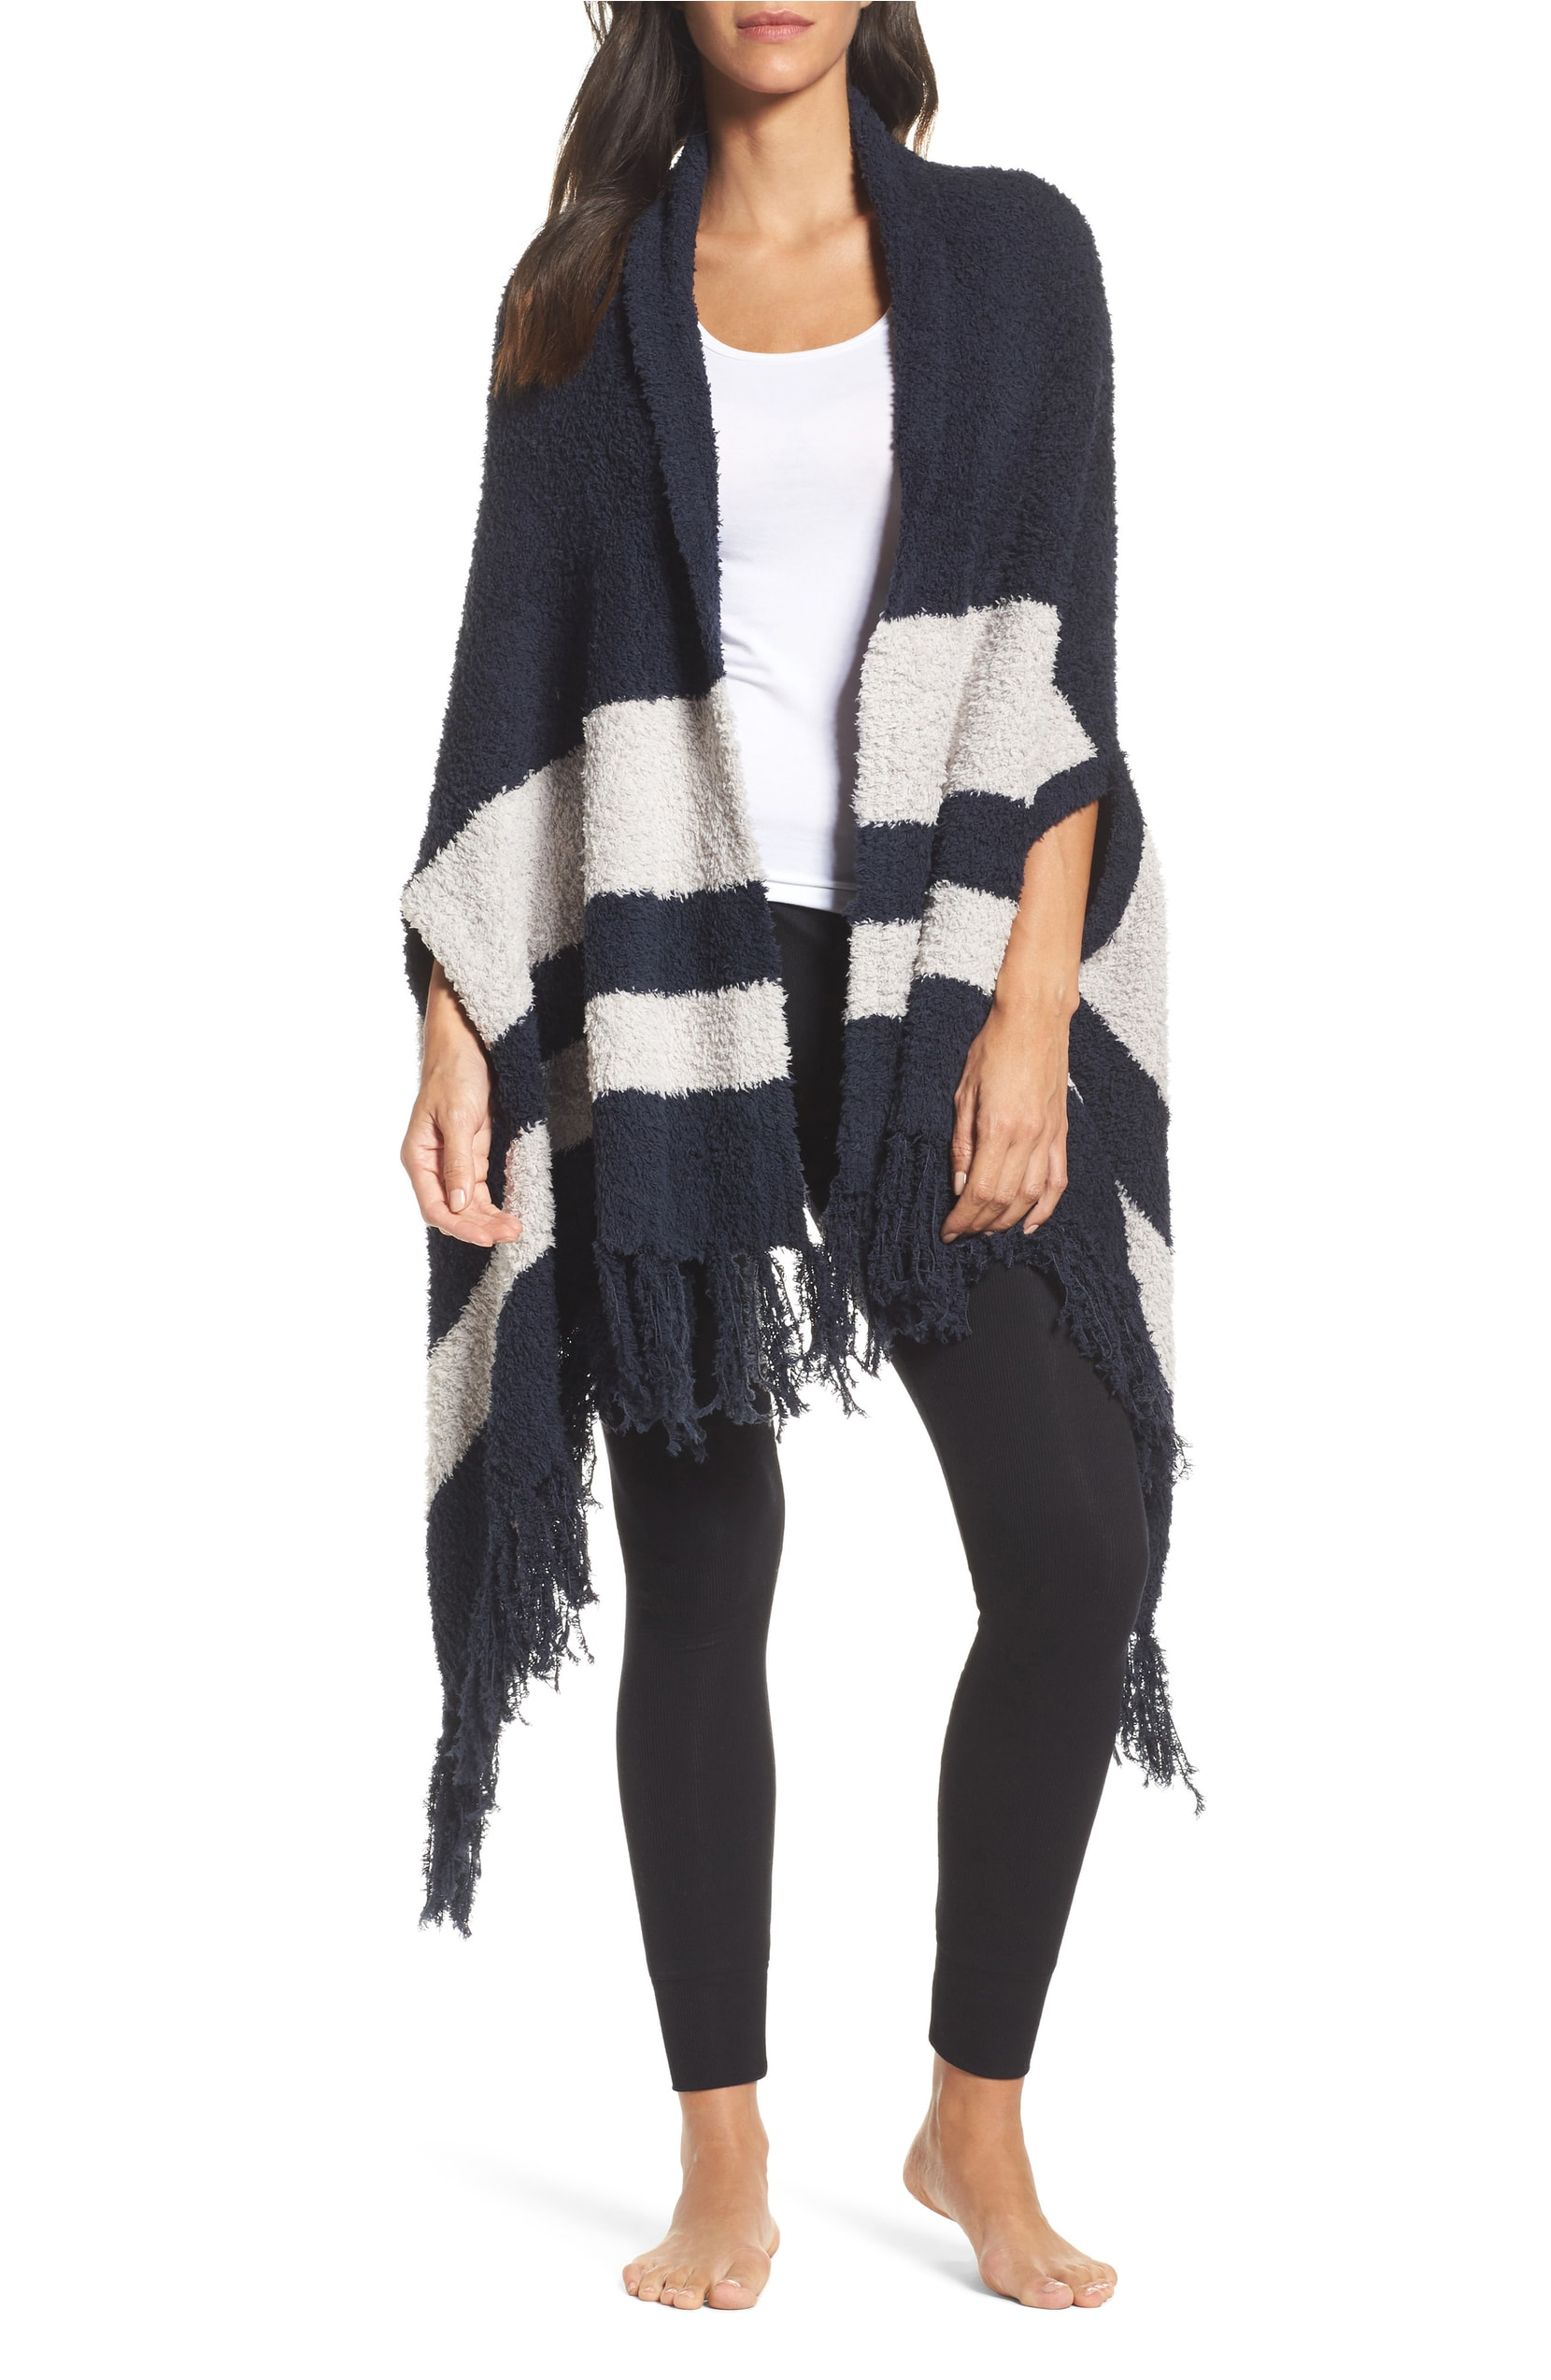 Malibu Wrap. Sale: $80.90 / After Sale: $121.00. (Image: Nordstrom){ }